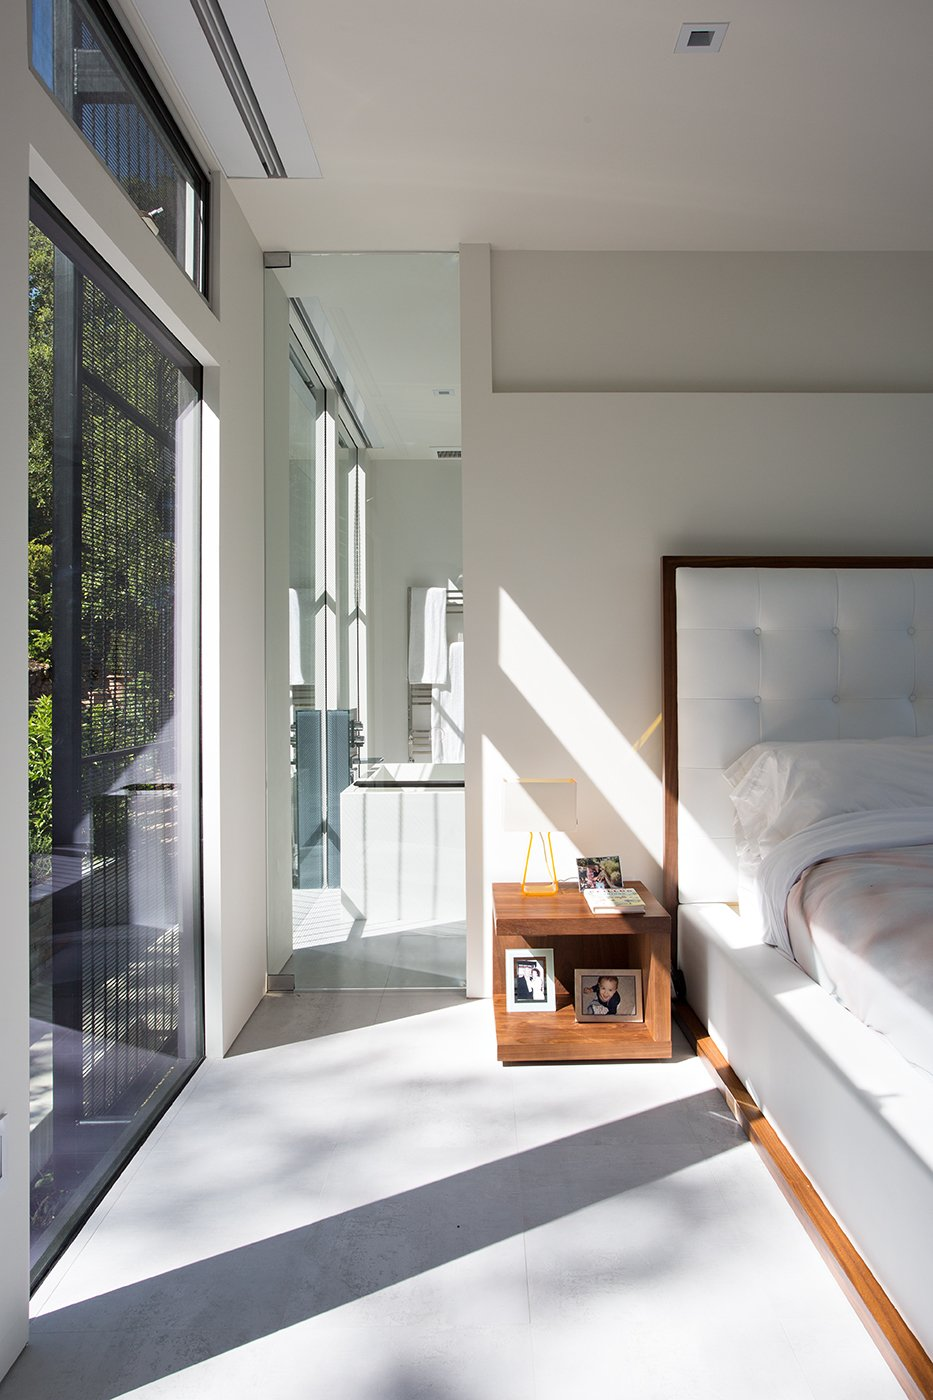 Bedroom, Bed, and Night Stands Minimal Modern Addition  Sebastian and Tanja DiGrande's quest for natural light and open, modern design led them to Klopf Architecture in San Francisco. Working hand-in-hand with homeowner/designer Tanja DiGrande, Klopf collaborated on a modern addition to the rear of a traditional-style home. The idea was to depart from the original style completely to draw a distinction between the original house and any later additions, as well as observe a very minimal, clean, gallery-like modern style against which changing daylight, art, furniture, and of course the people provide the color and motion.  With its dark gray stuccoed walls, dark steel railing, and floor-to-ceiling windows, the exterior of the addition is at the same time an open, modern box as well as a receding volume that acts almost as a backdrop for the house, receding visually out of respect for the original home. From the interior, windows bring in nature and views from all around the lush property. They also allow views of the original house. Up on the roof deck the views magnify. The owners use a boom and crank to bring up food and drinks when entertaining!  Inside, the simple clean-lined spaces showcase the couple's minimal, modern taste. The open bathroom epitomizes the clean, minimal style of the addition. On the exterior, steel elements bring a more industrial modern feeling to the addition from the rear.   Klopf Architecture